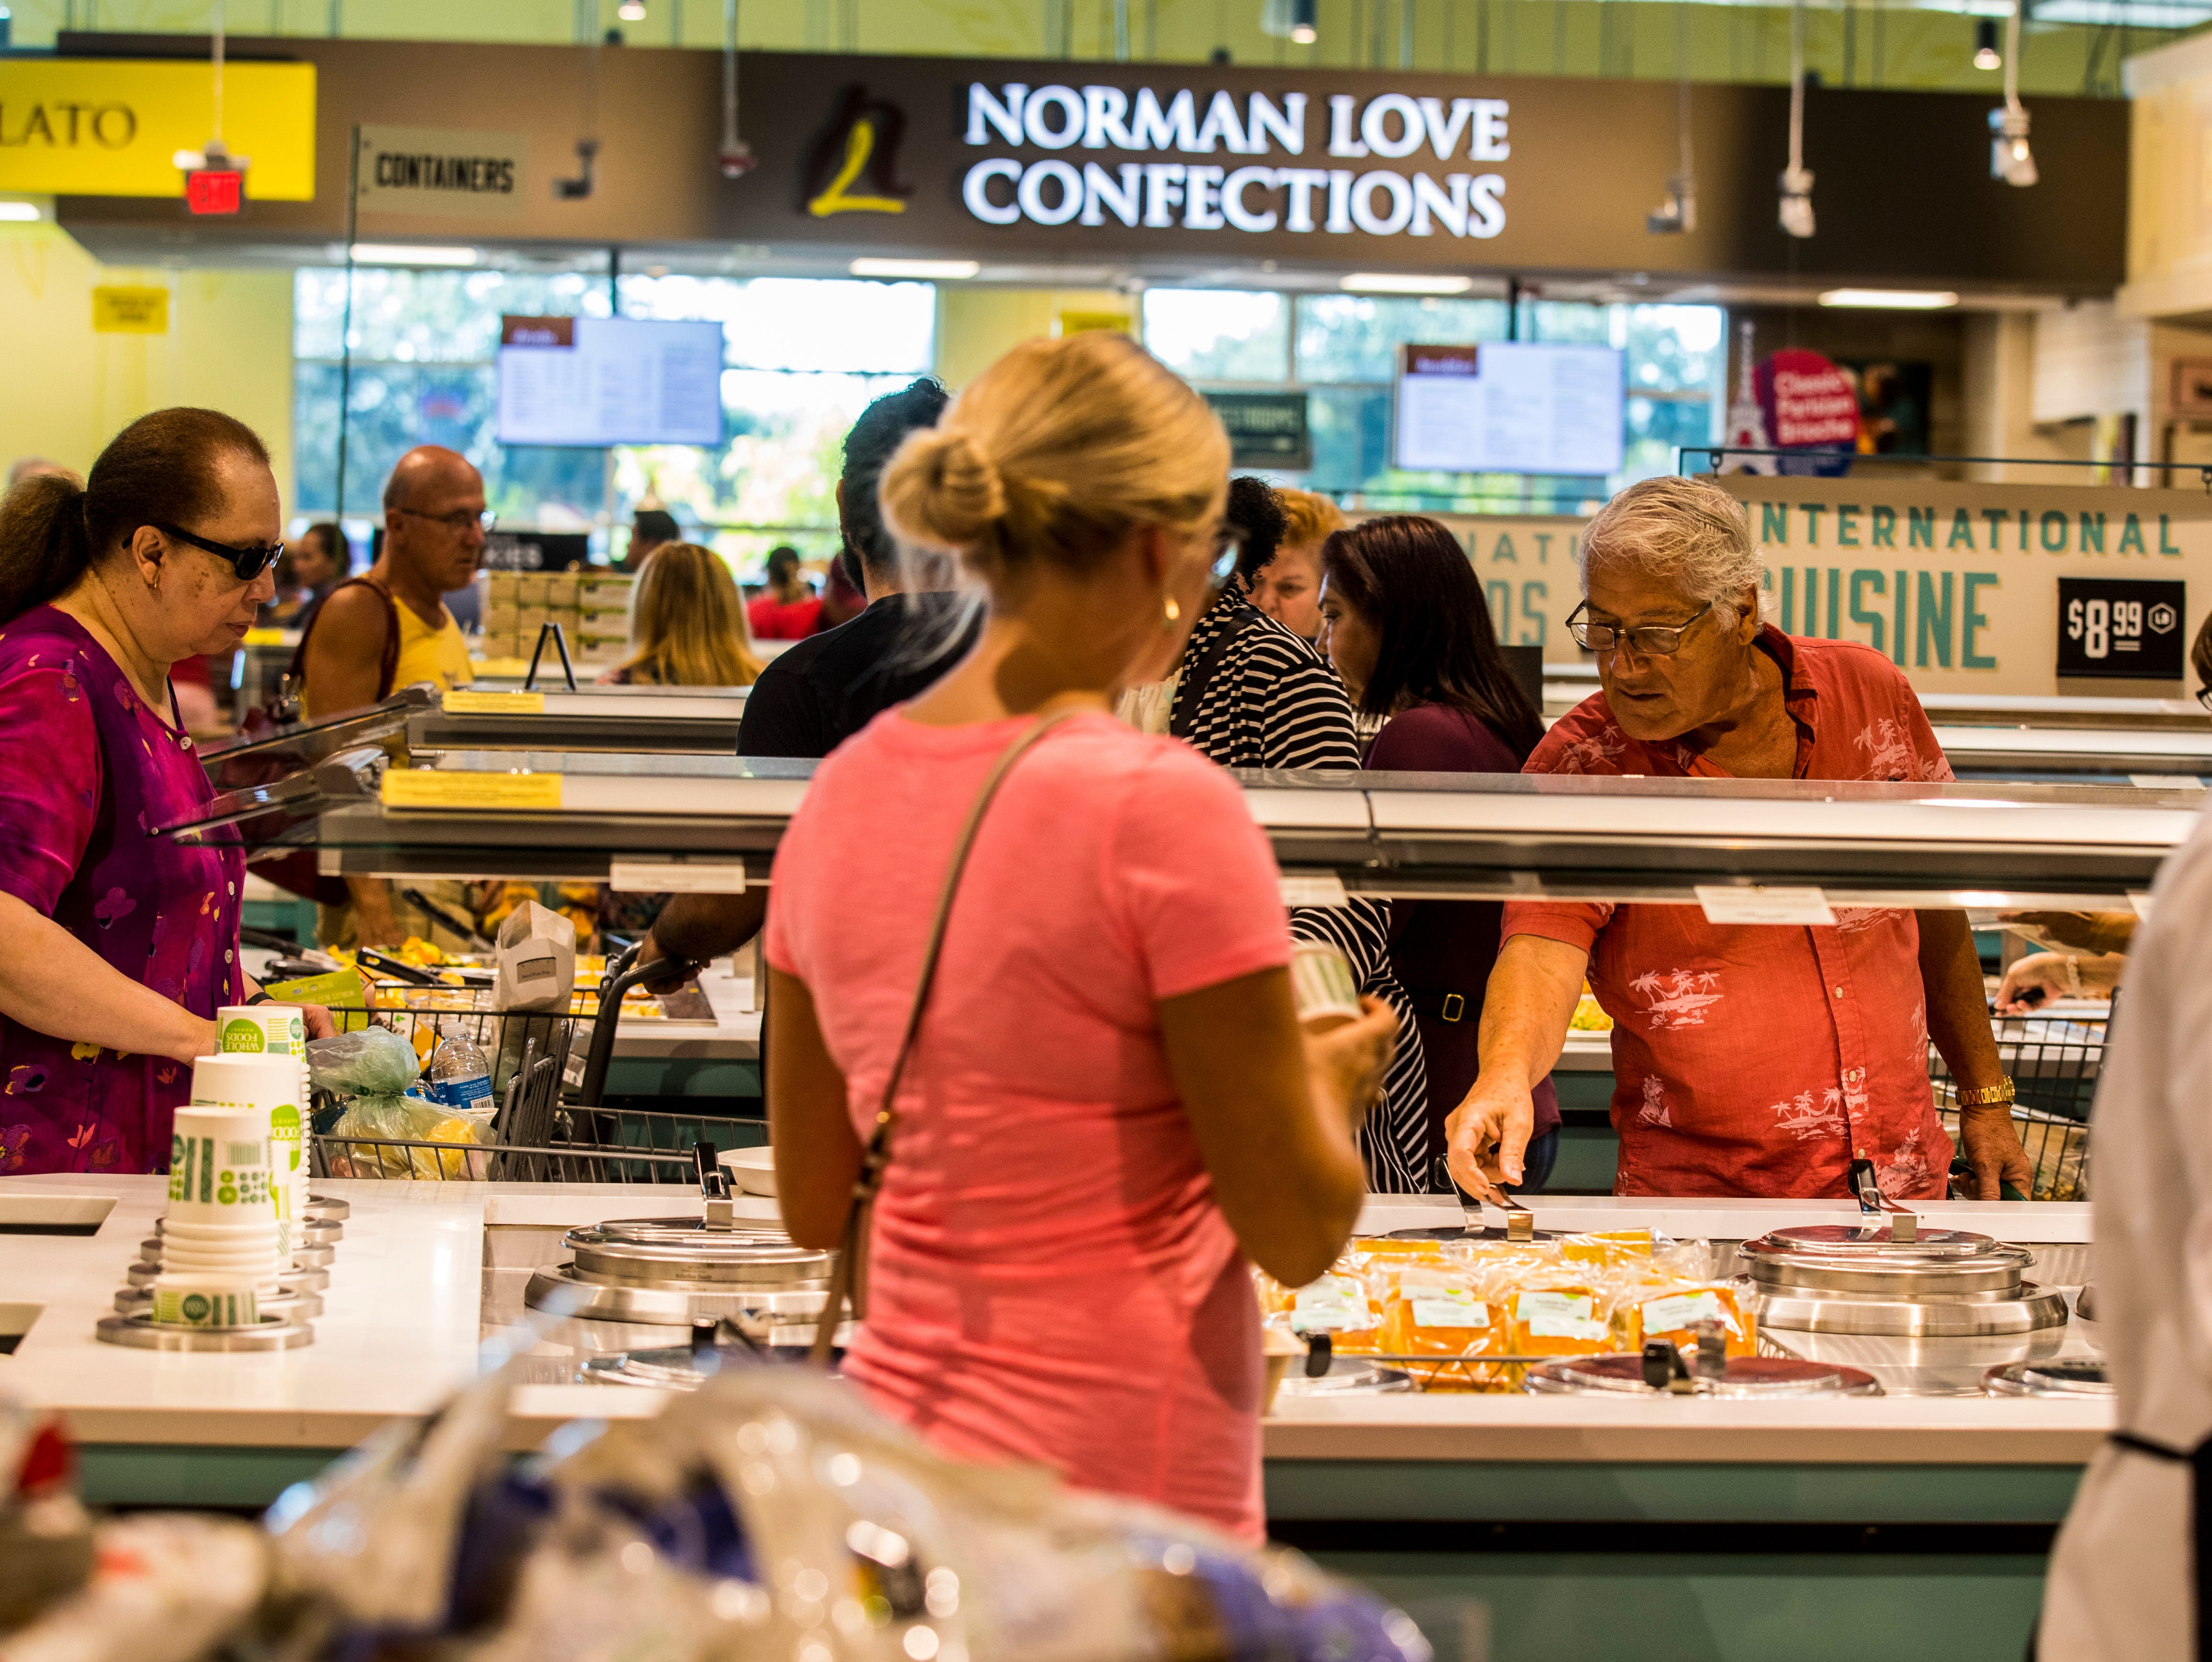 The Deli area was a popular spot for customers. Whole Foods Market in South Fort Myers on the corner of Daniels and Six Mile Cypress opened on Wednesday morning to a crowd that wrapped around the building for hours.